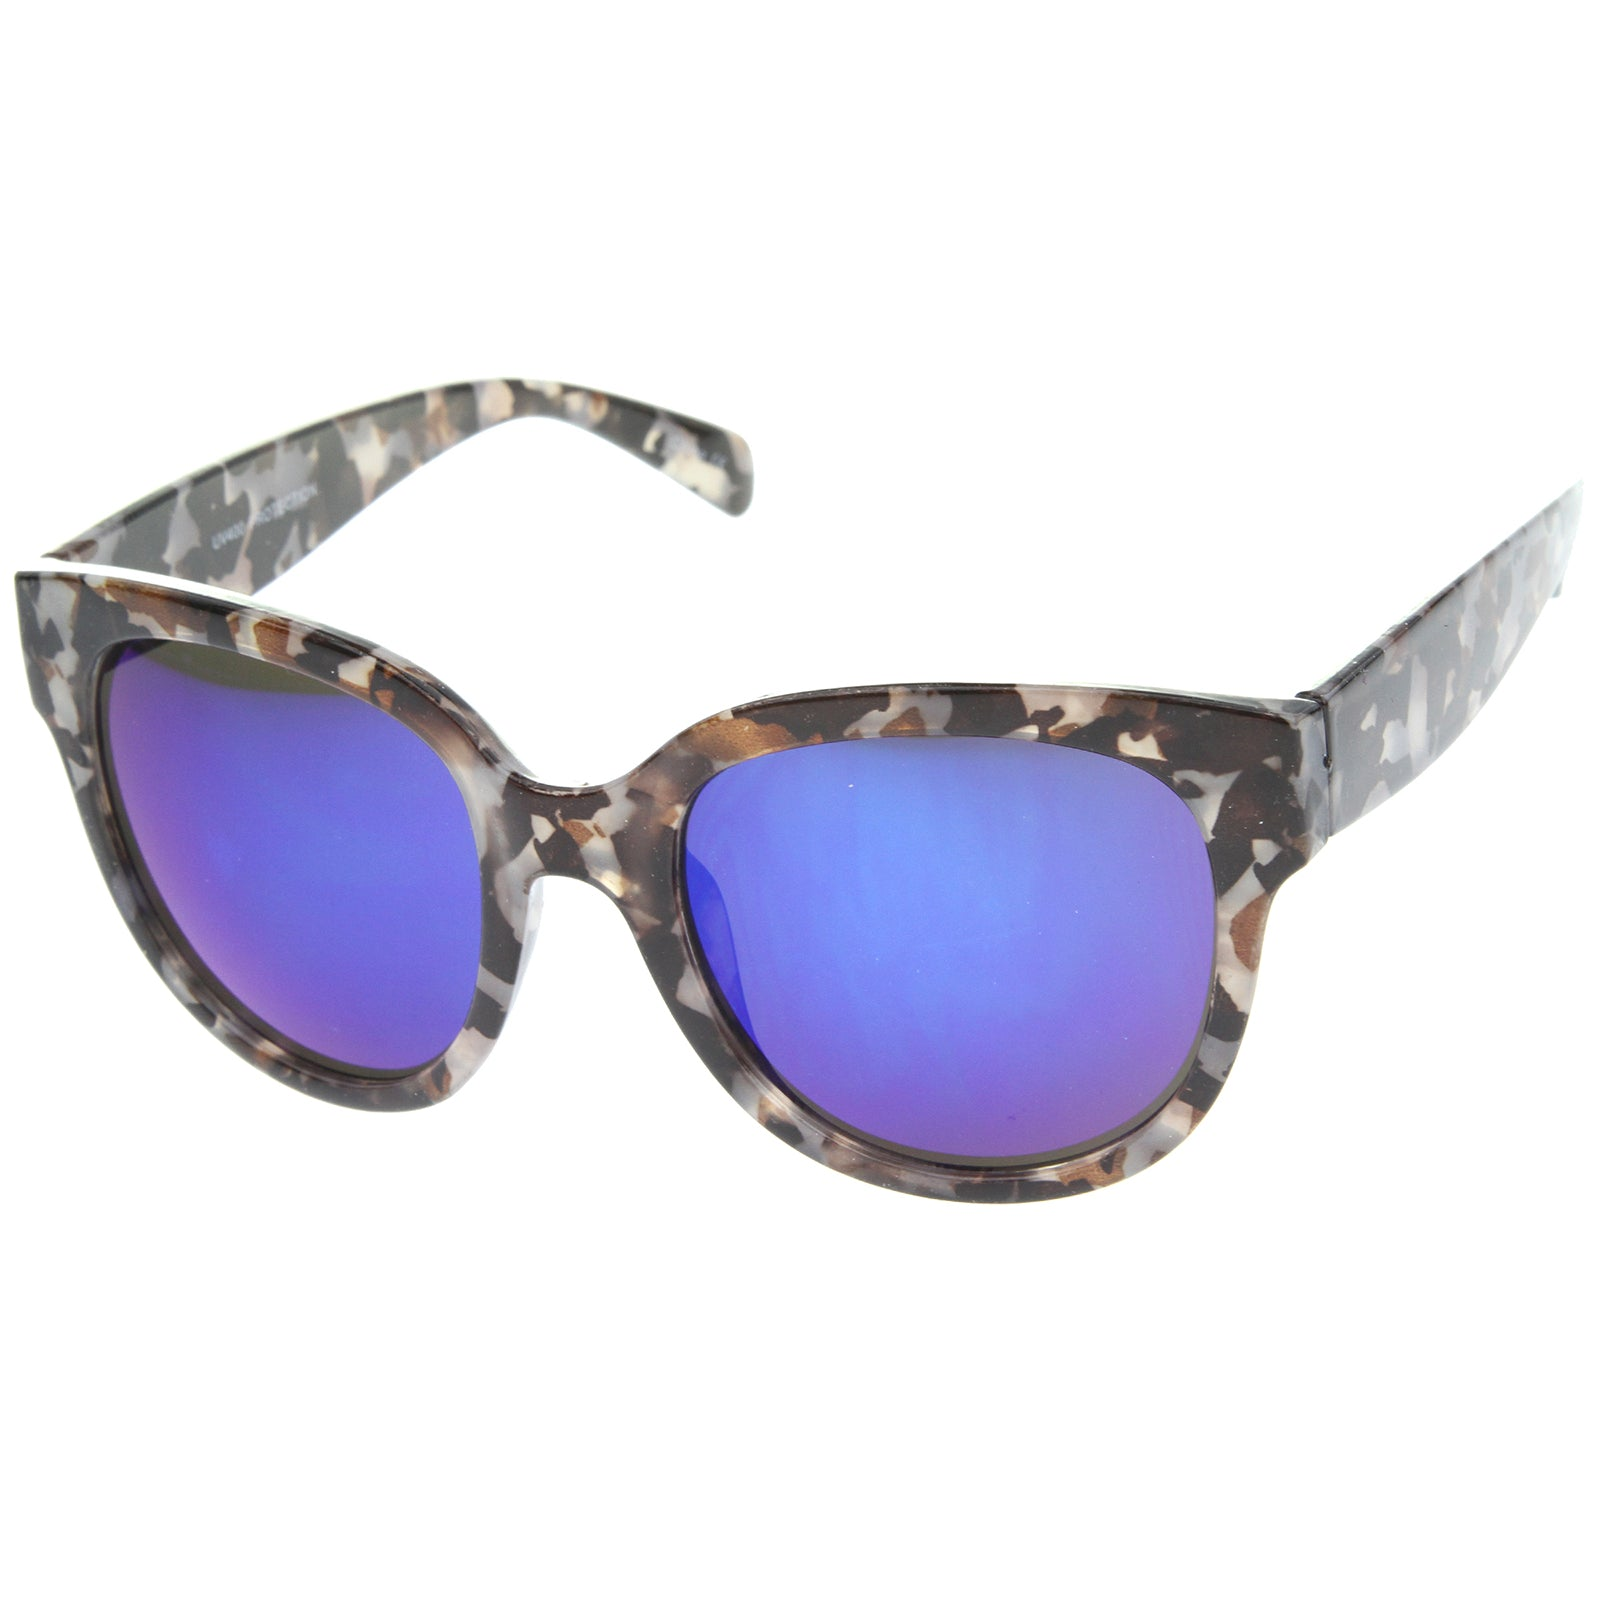 Womens Cat Eye Sunglasses With UV400 Protected Mirrored Lens - sunglass.la - 2